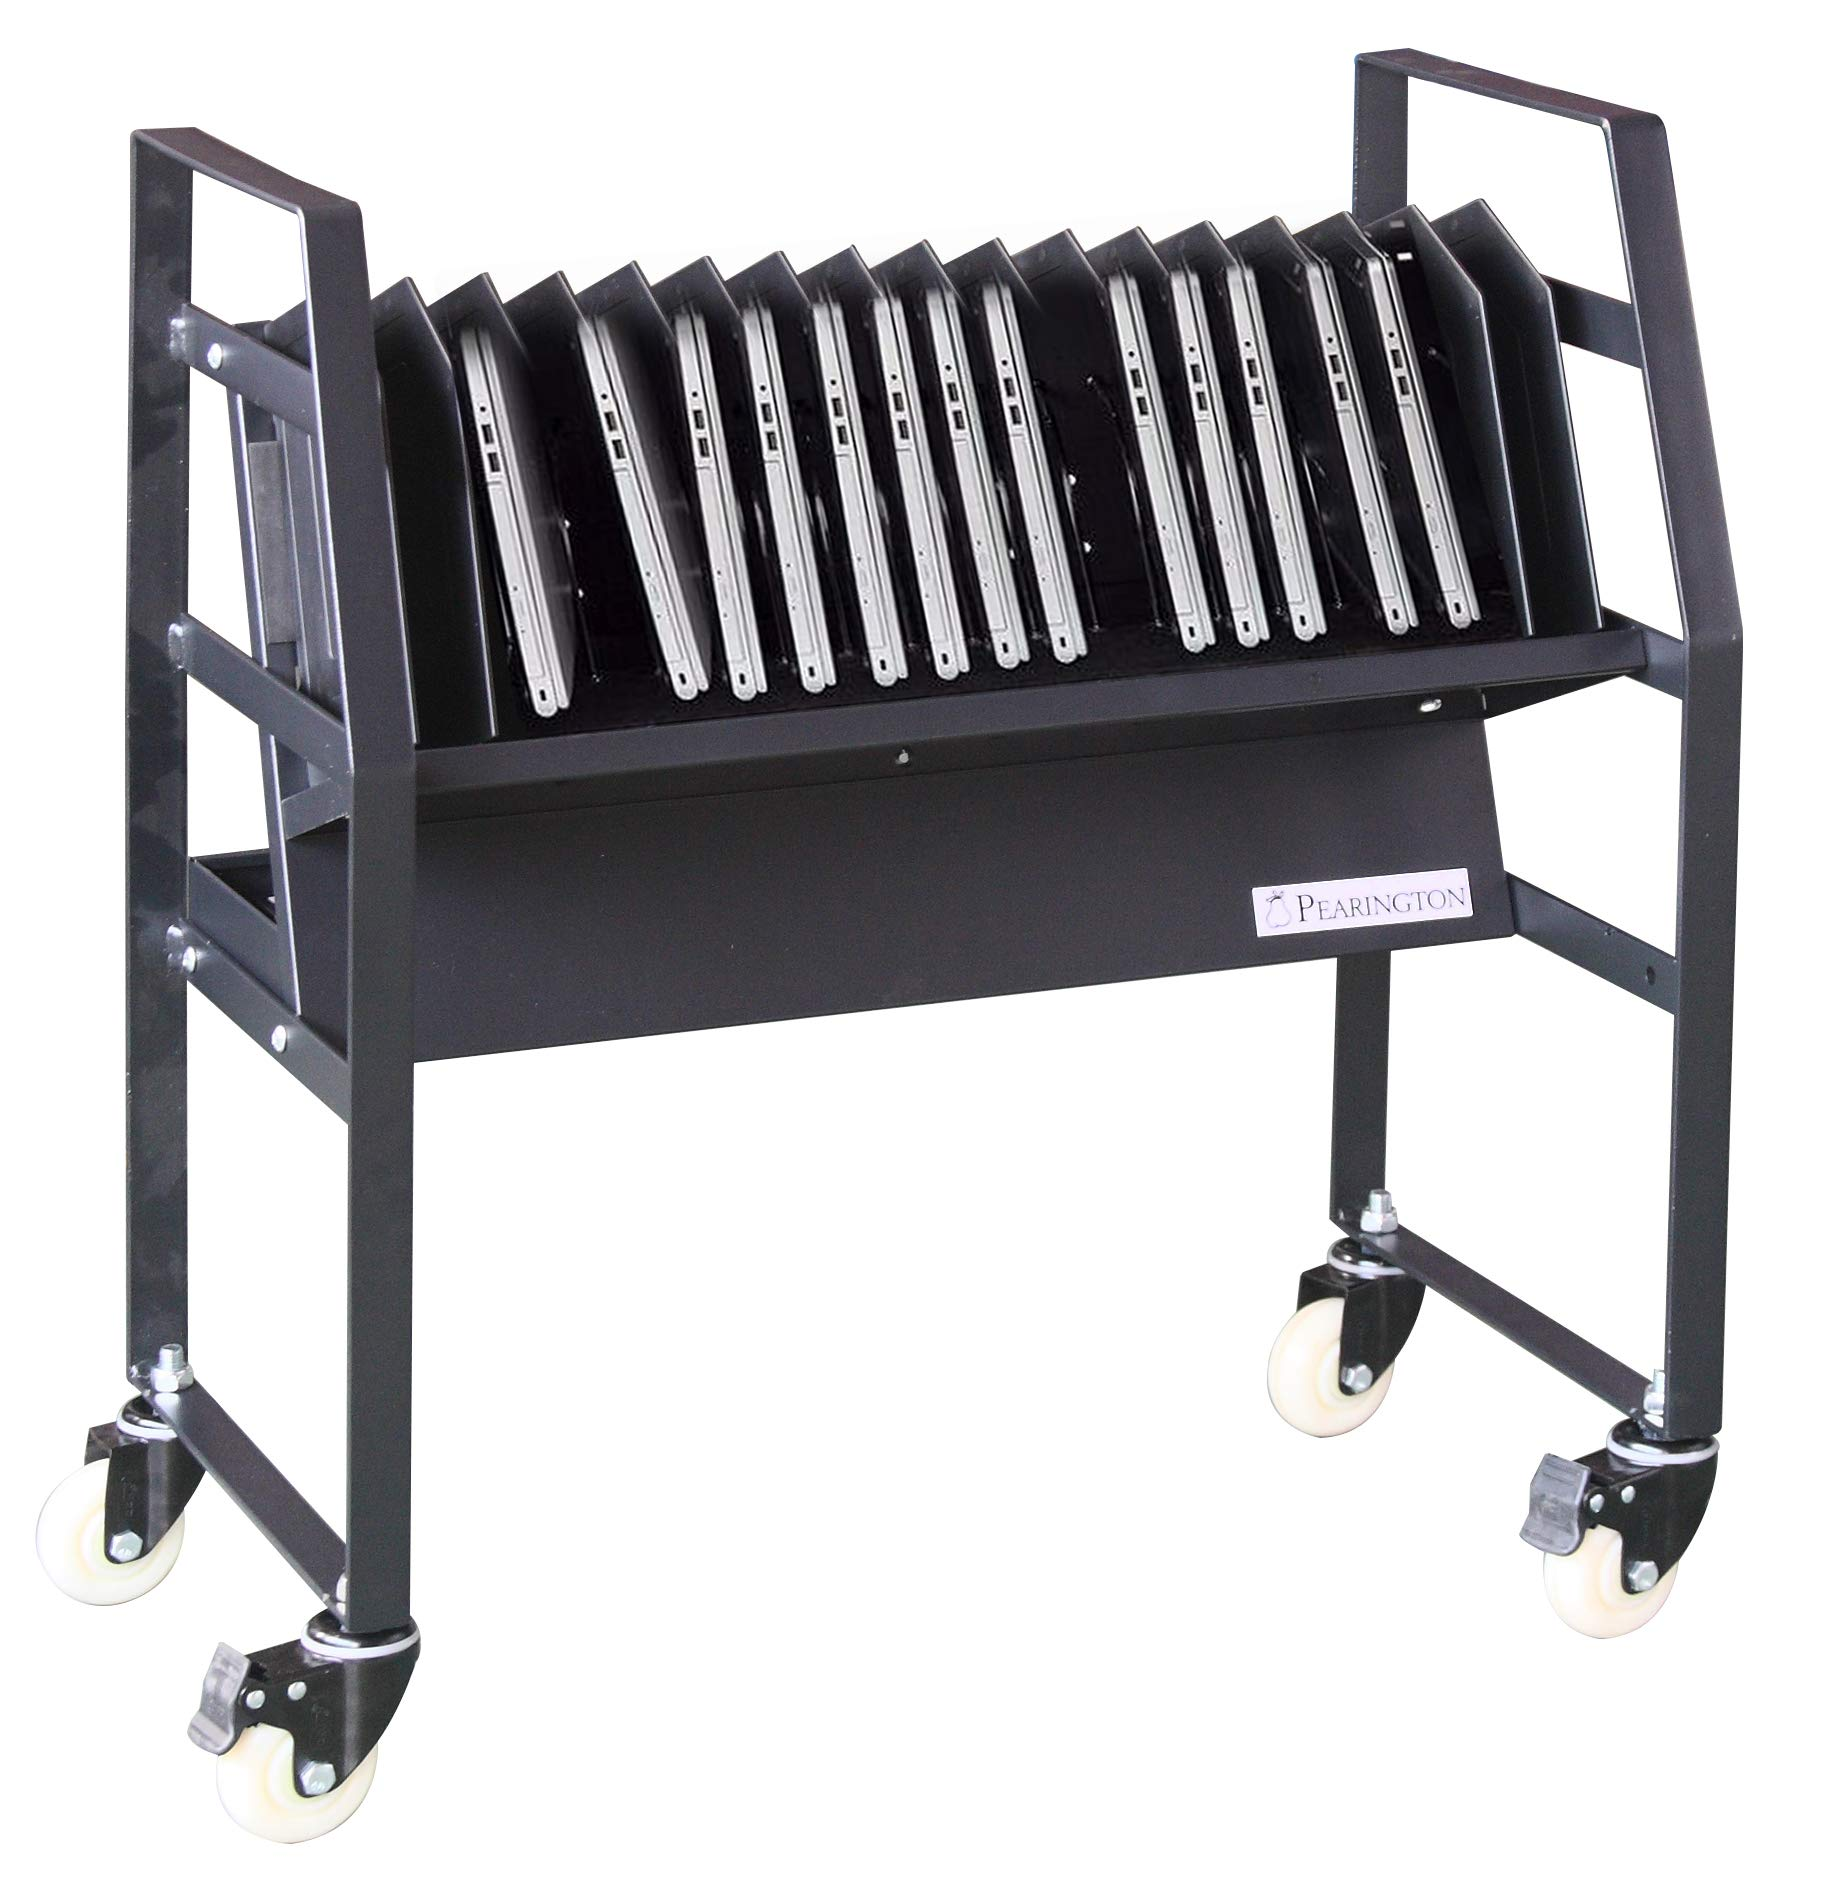 Pearington 16 Bay Classroom and Office Mobile Charging Cart with Wheels - for Chromebooks, iPad and Laptops